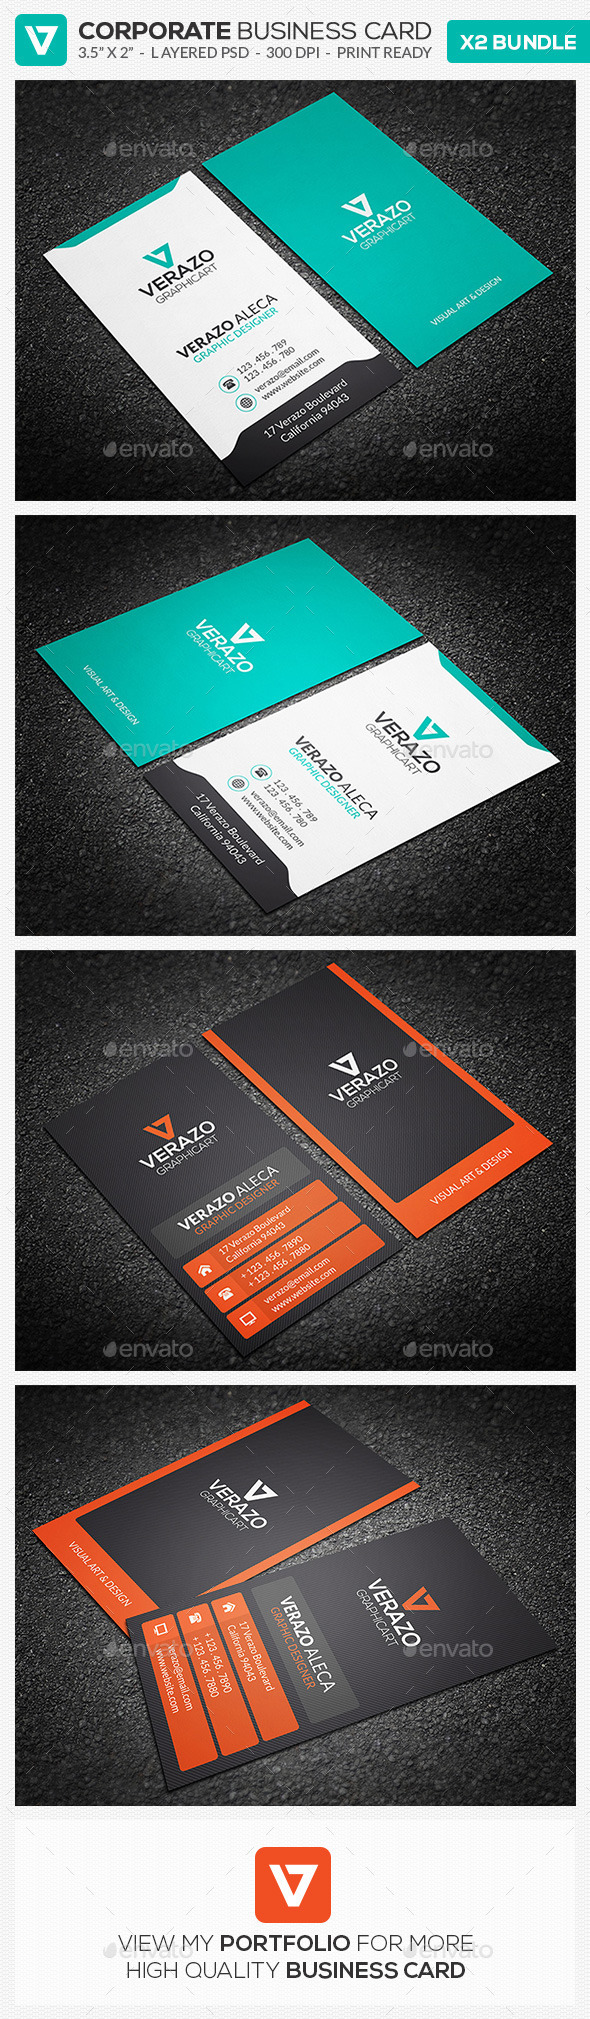 GraphicRiver Business Card Bundle 08 8847948